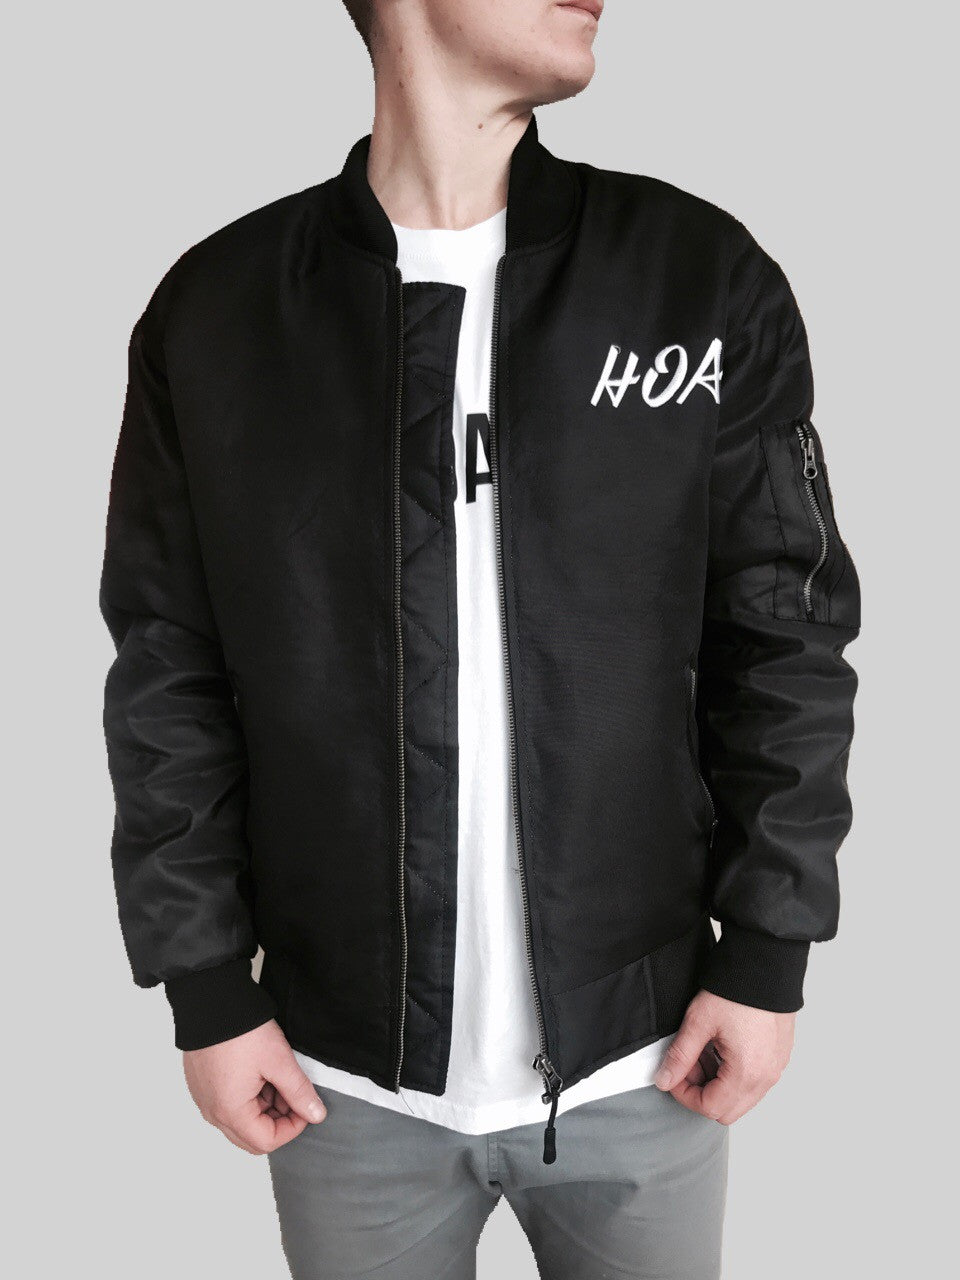 HOA Statement Bomber Jacket Black